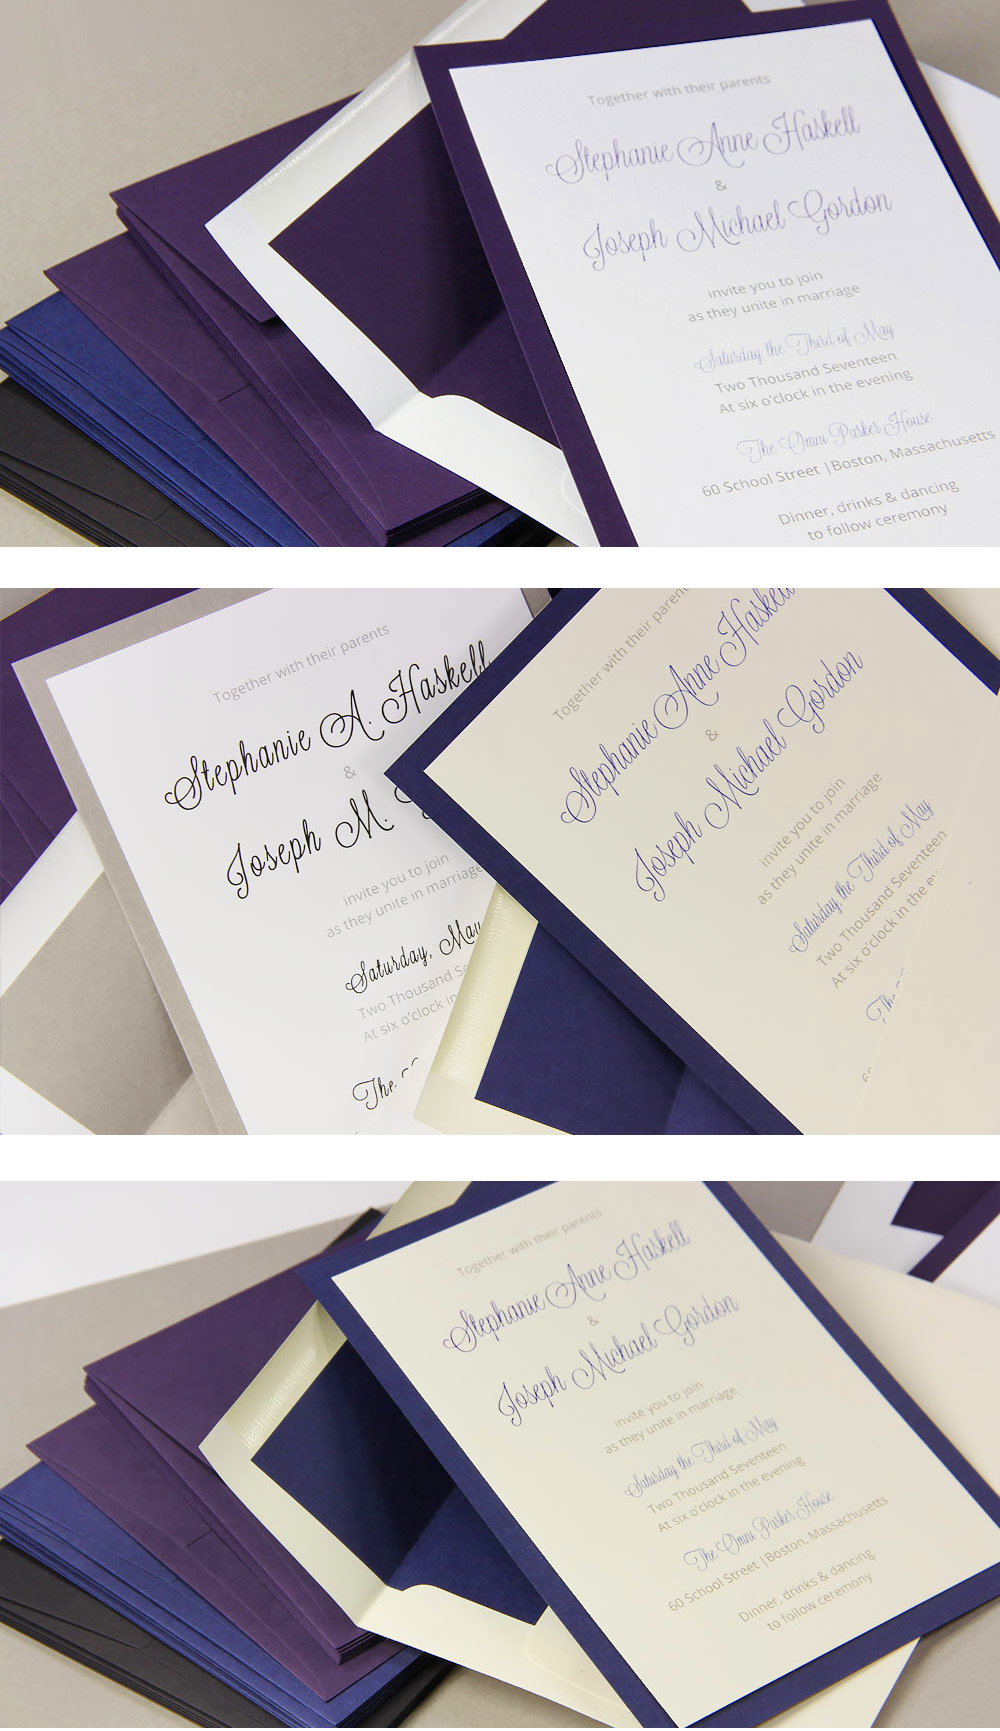 Make Your Own Layered Invitations, Free Template, Instructions